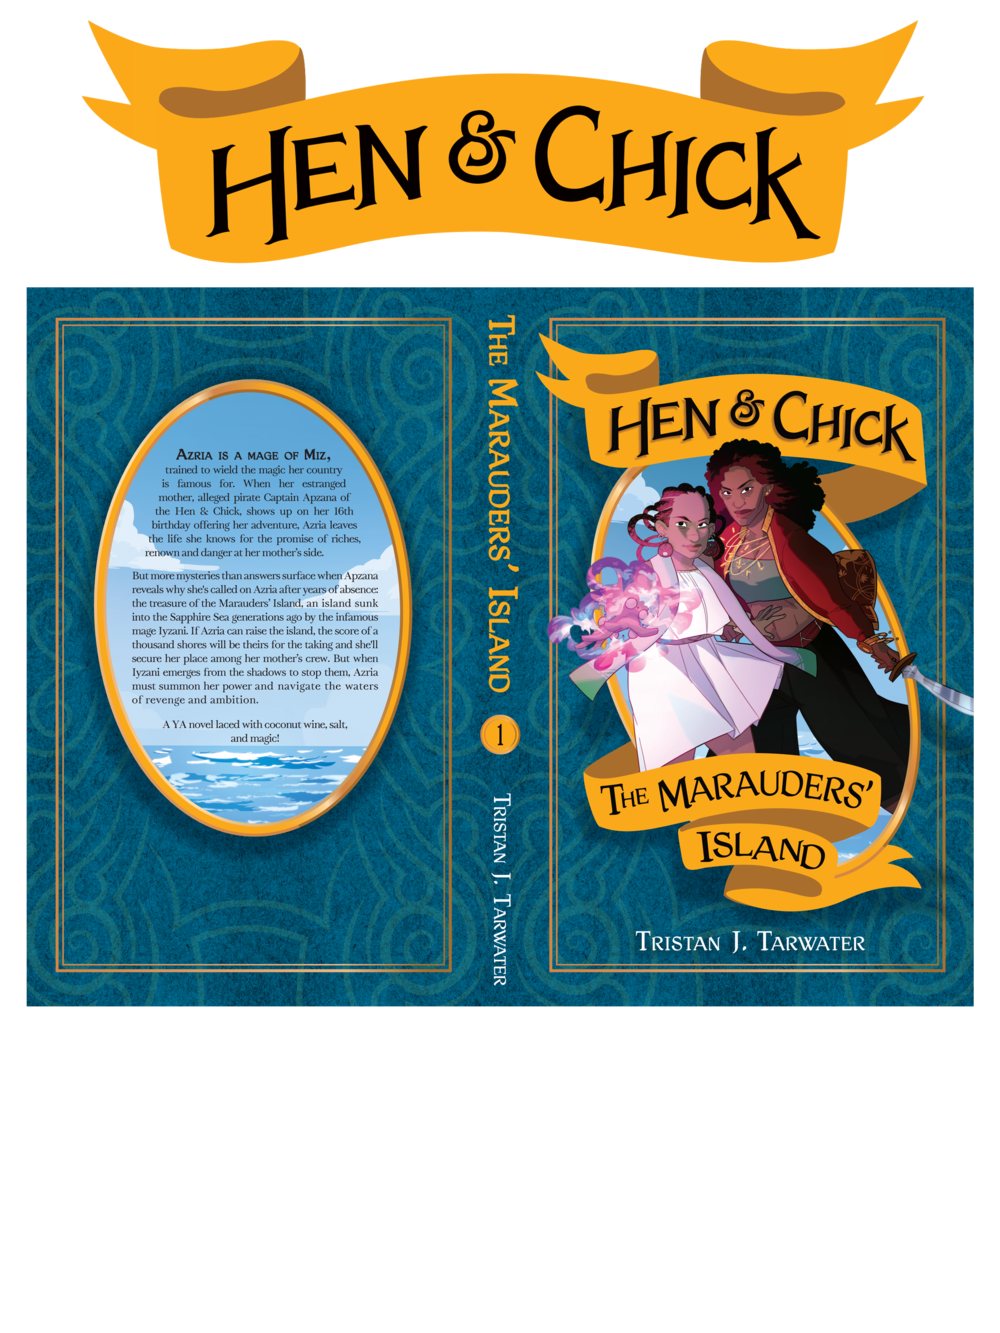 Hen & Chick Cover and Logo